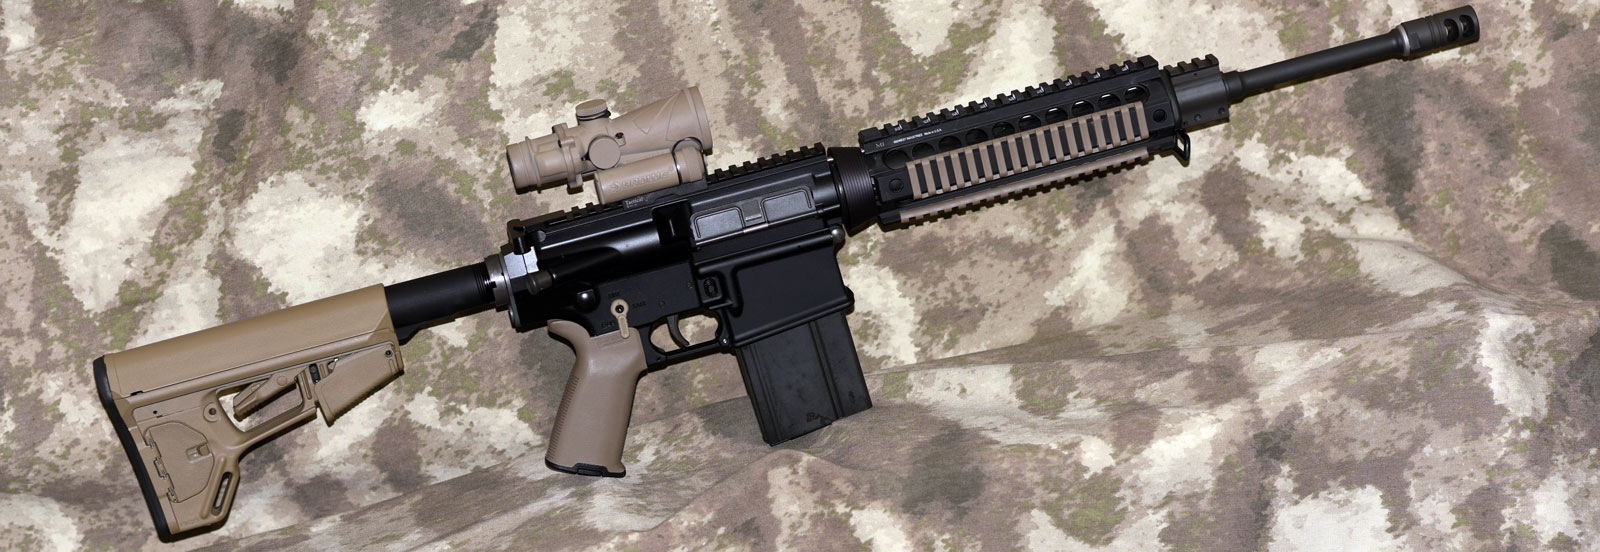 BUILD an ARMALITE AR-10 | How do I Build an AR10 Online?